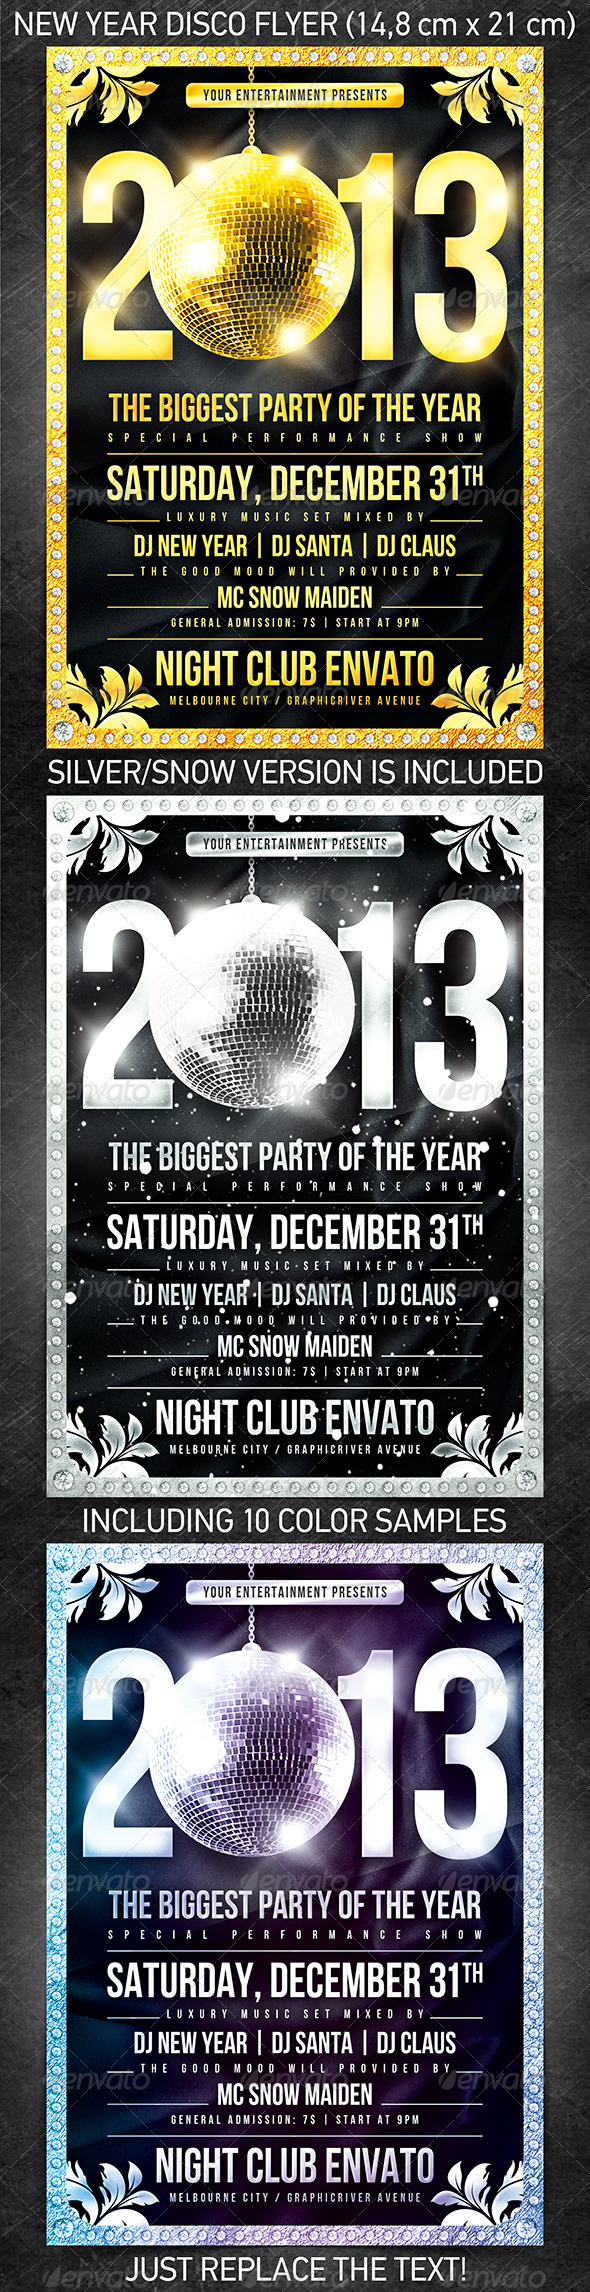 Graphic River New Year Disco Flyer Print Templates -  Flyers  Events  Clubs & Parties 943057